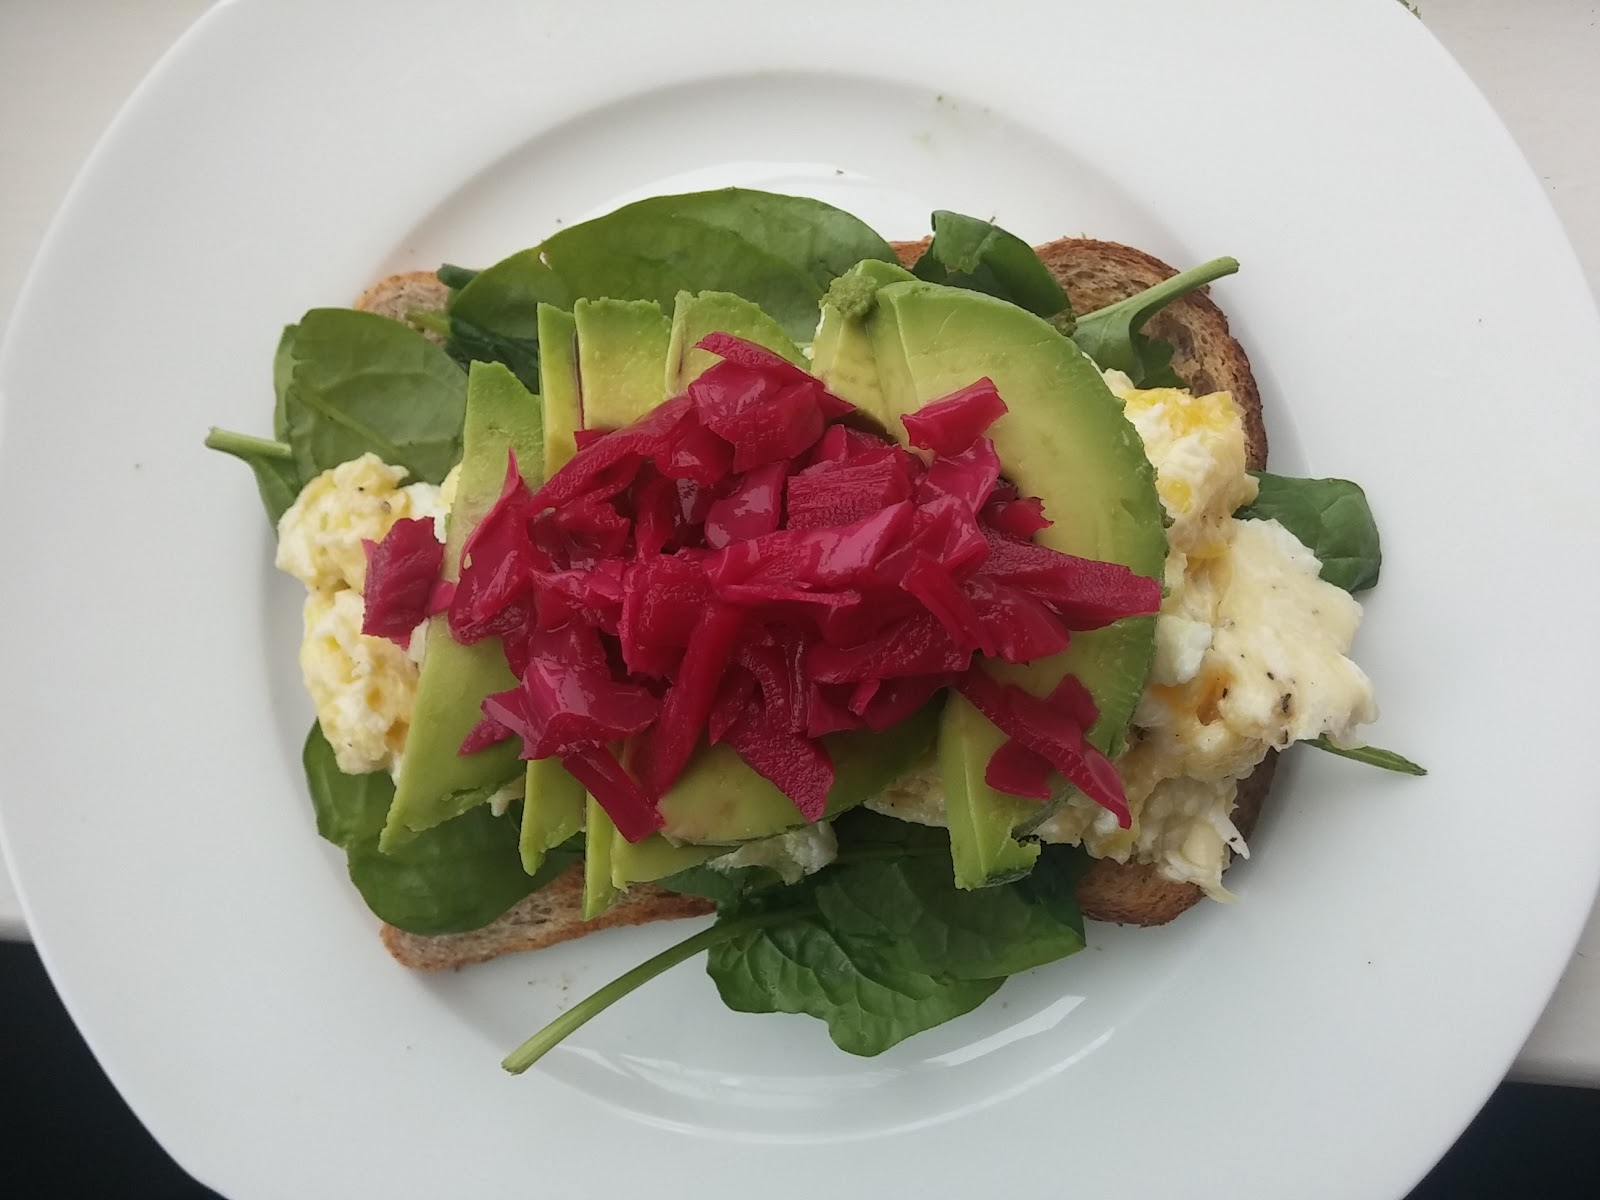 Scrambled Egg, Red Cabbage, Spinach, Avocado & Toast